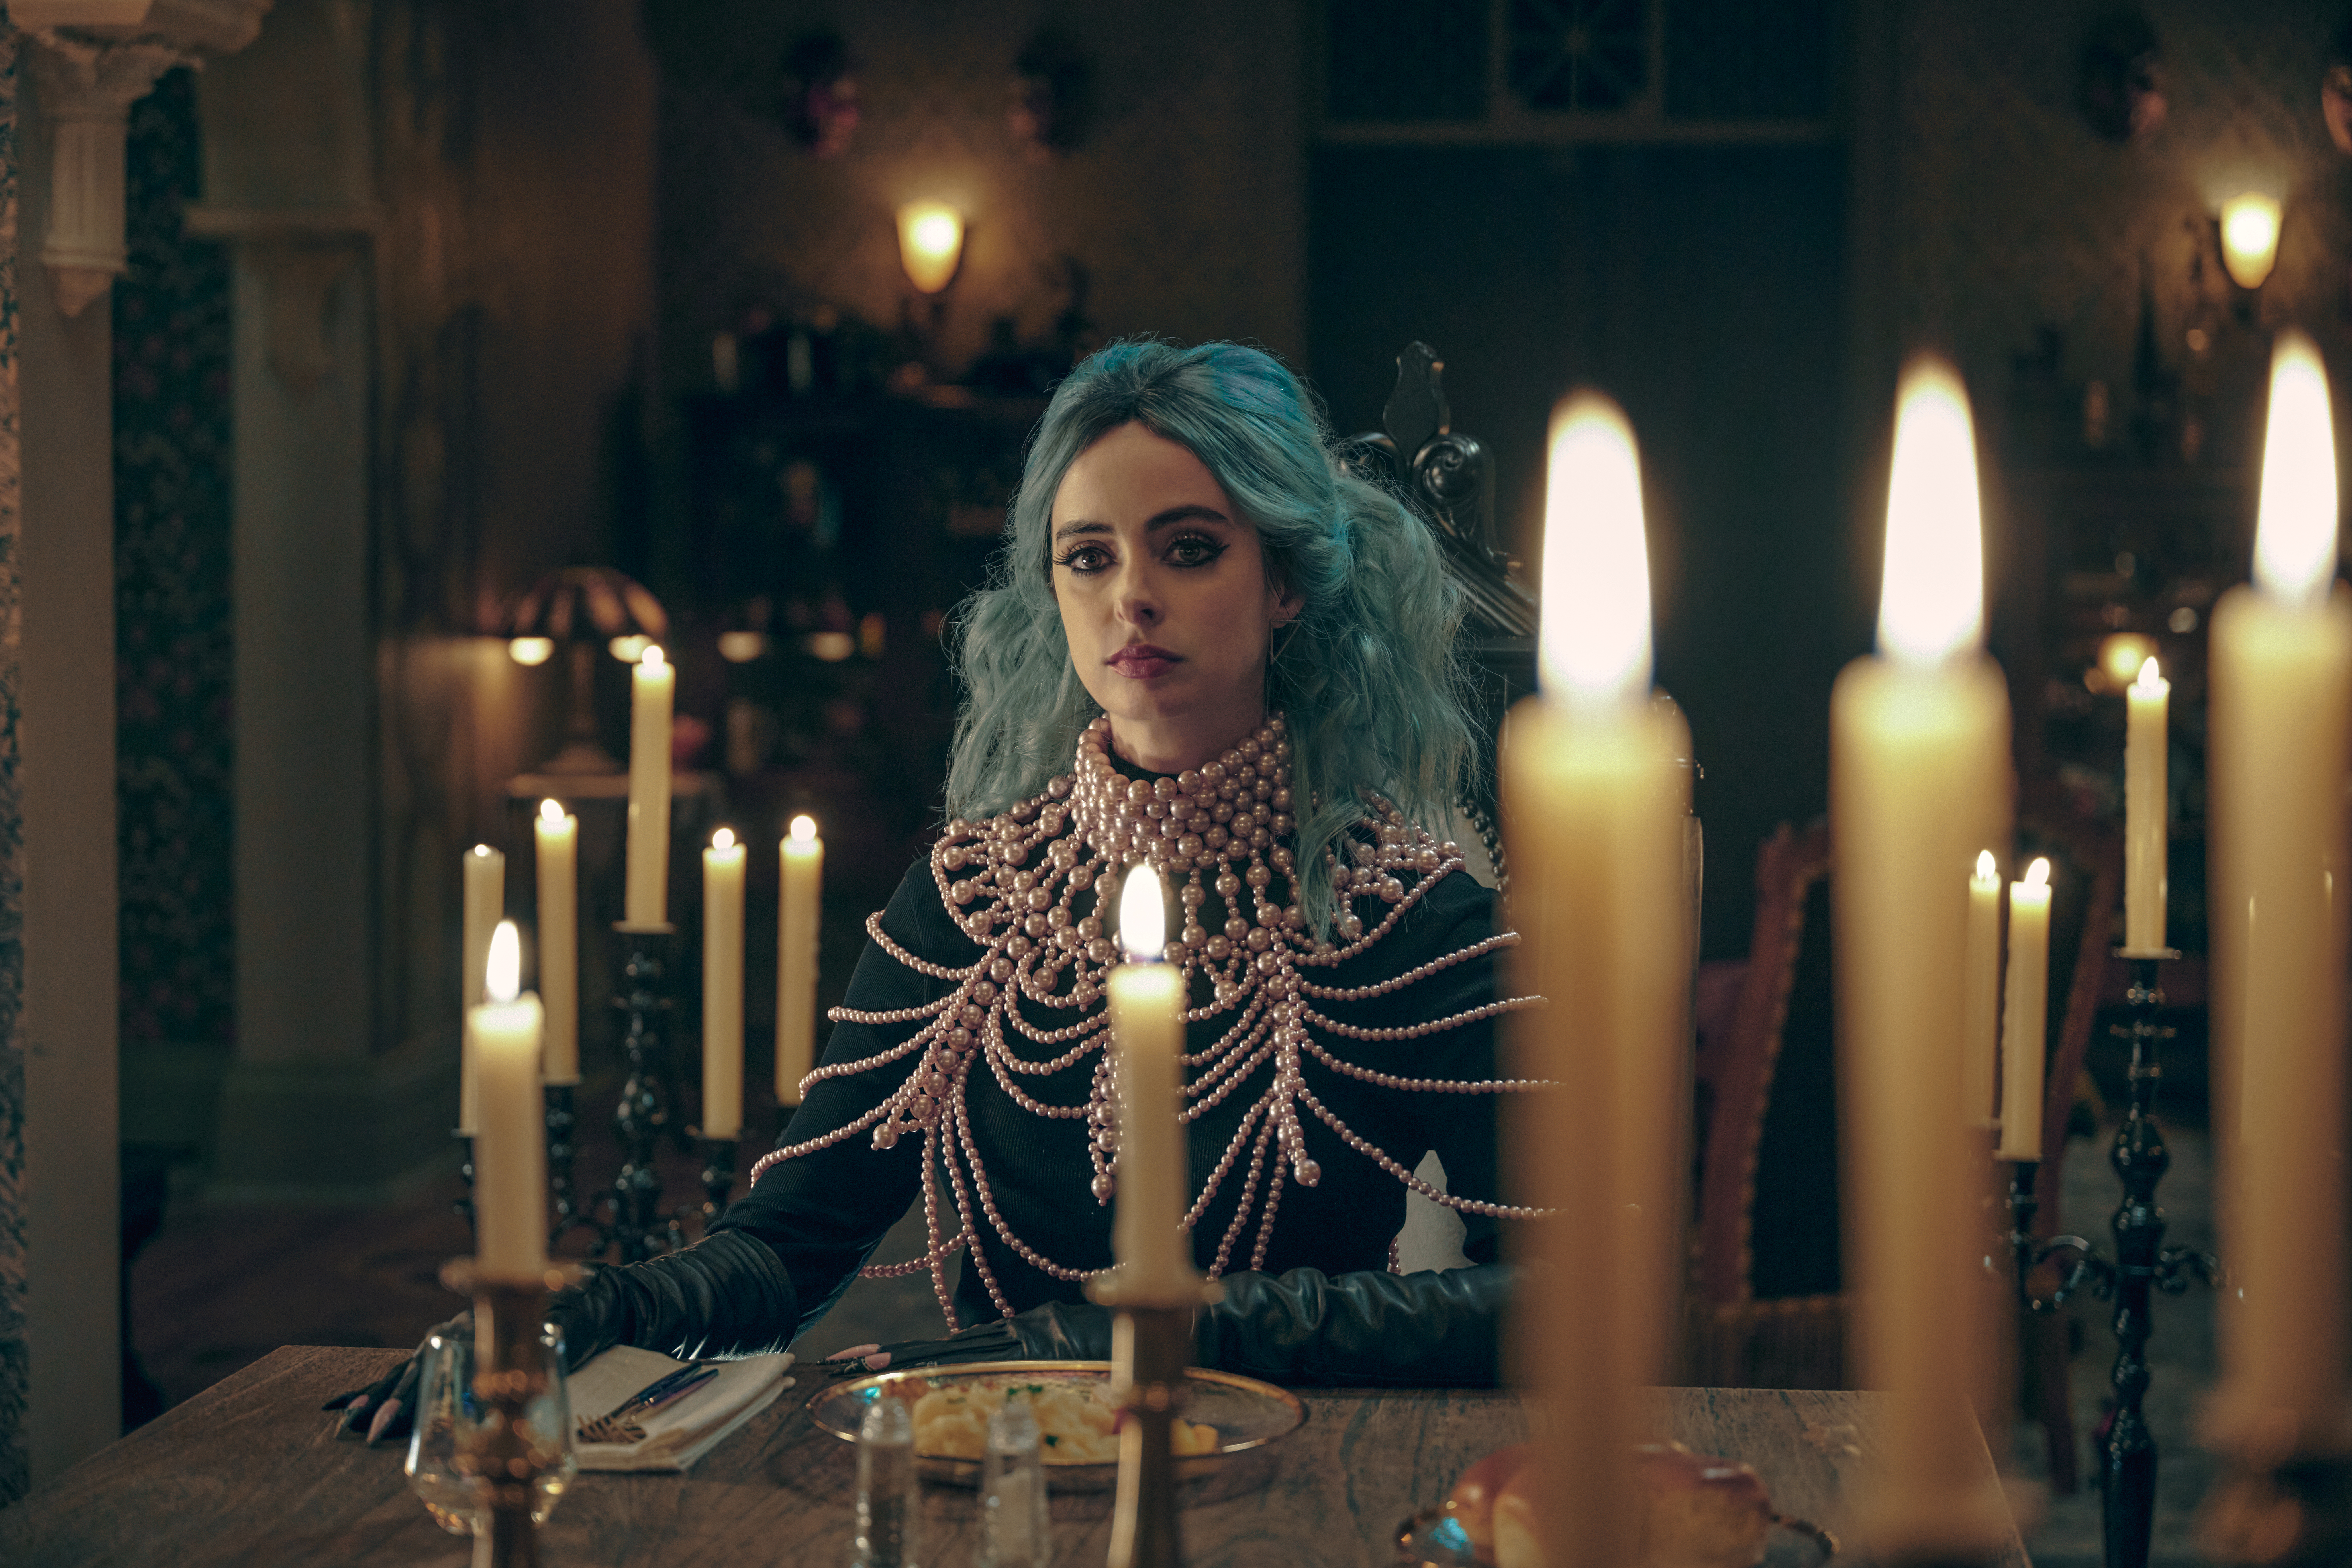 KRYSTEN RITTER as NATACHA in NIGHTBOOKS sitting behind some candles with her bright blue hair